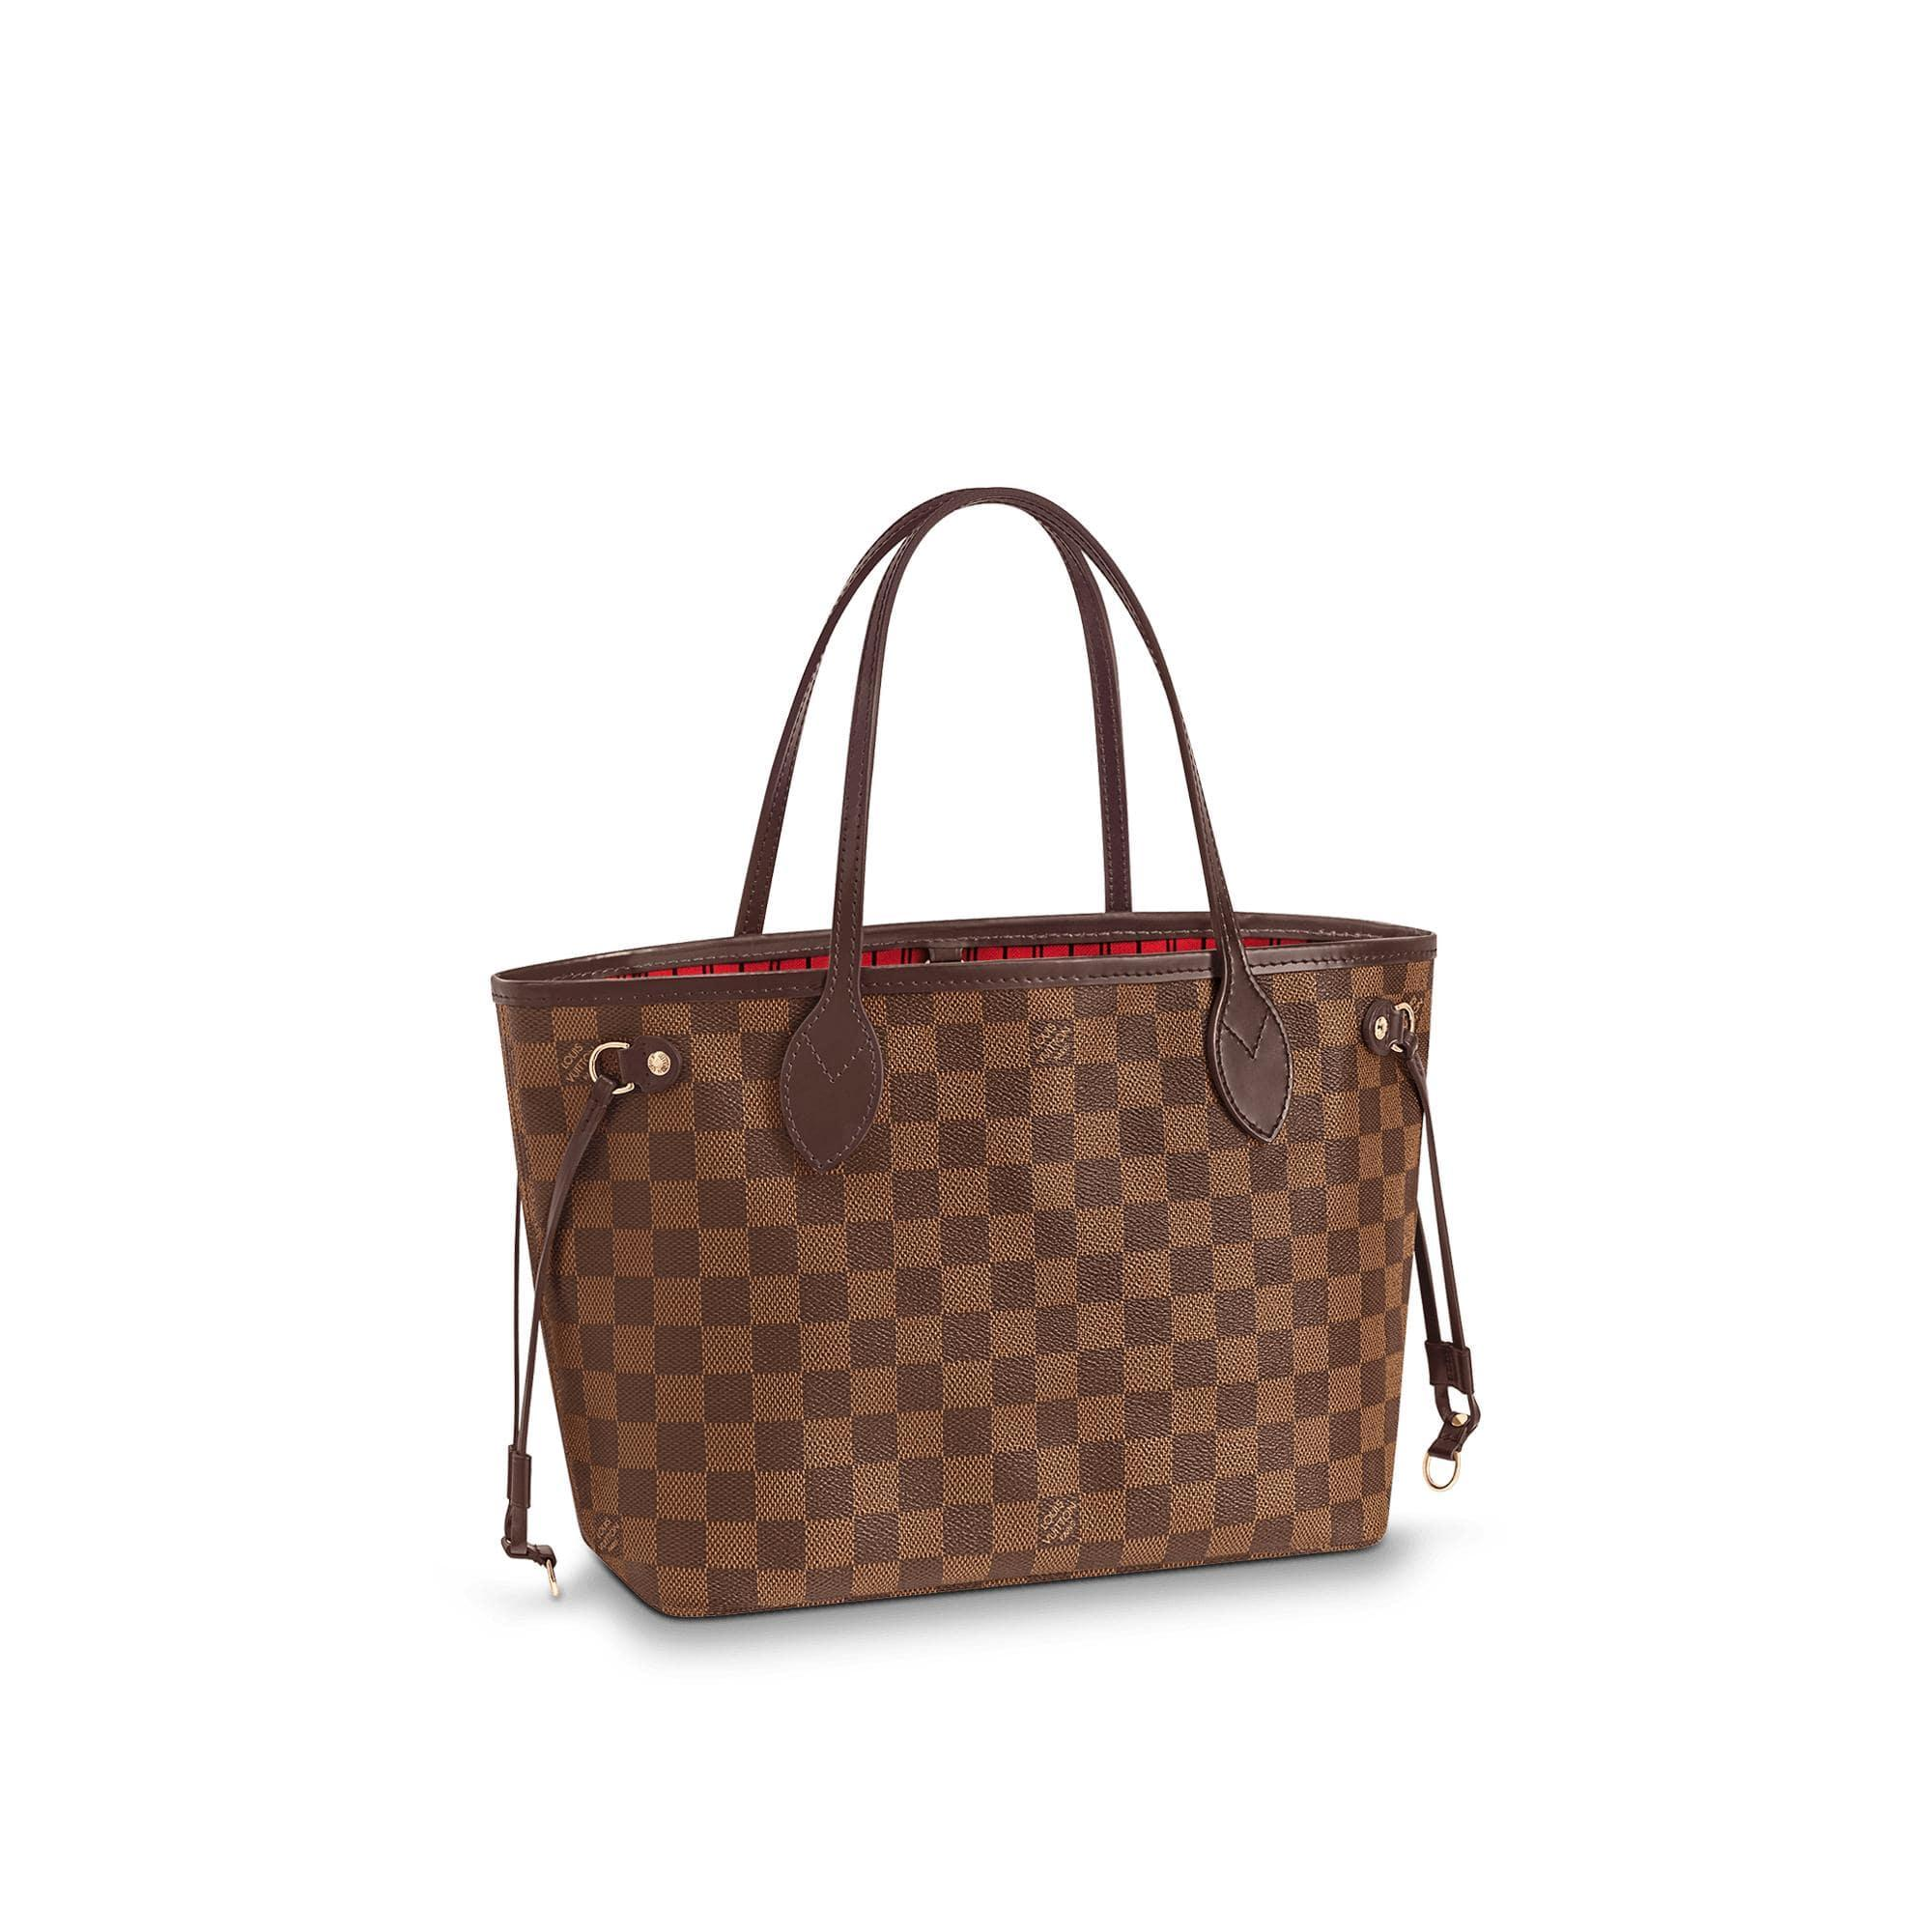 louis-vuitton-neverfull-pm-damier-ebene-handbags--N41359_2_PM2_Front view.jpg